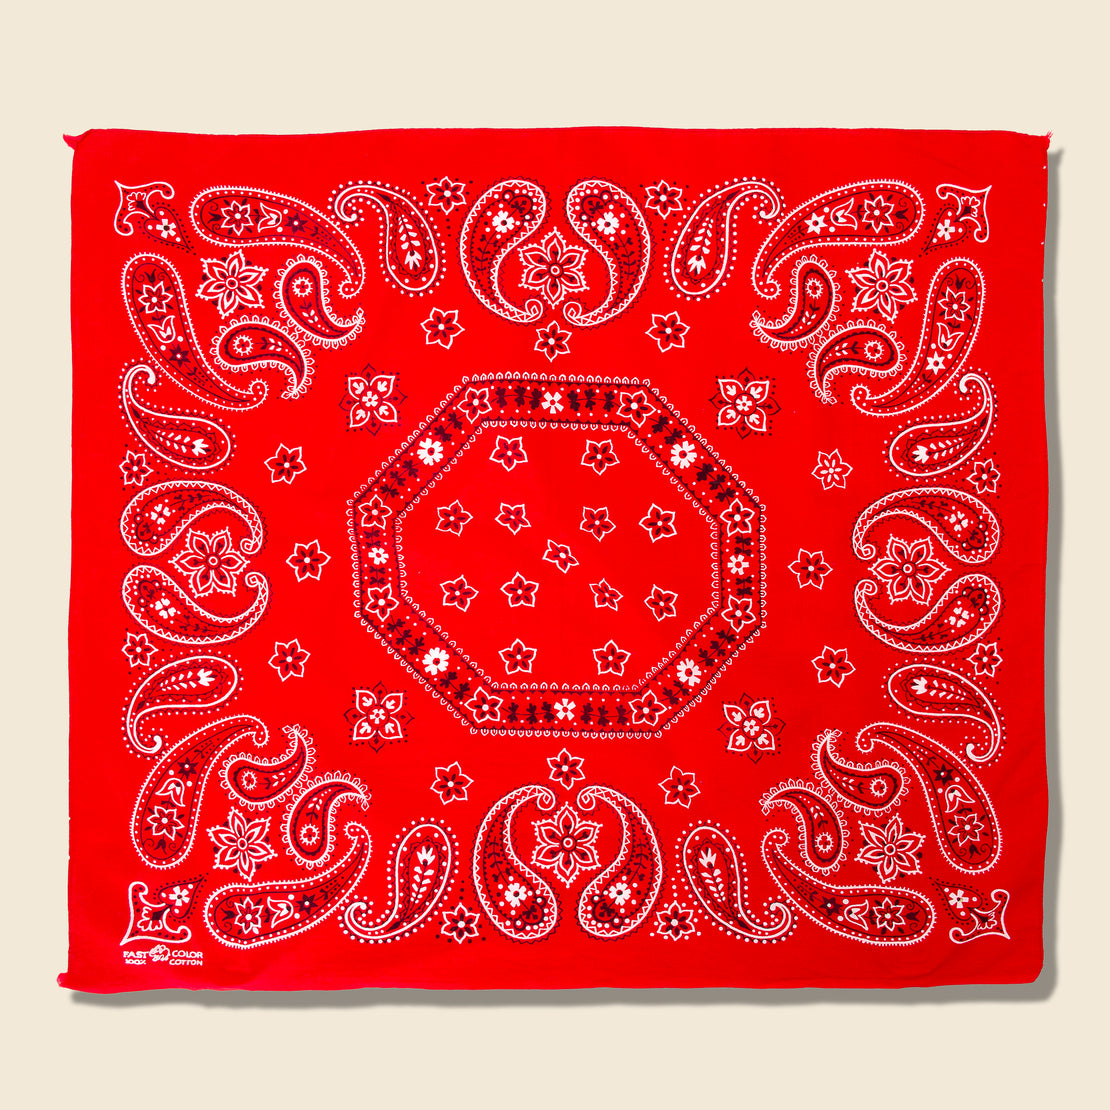 Vintage Fastcolor Cotton Paisley Bandana - Red/White/Black